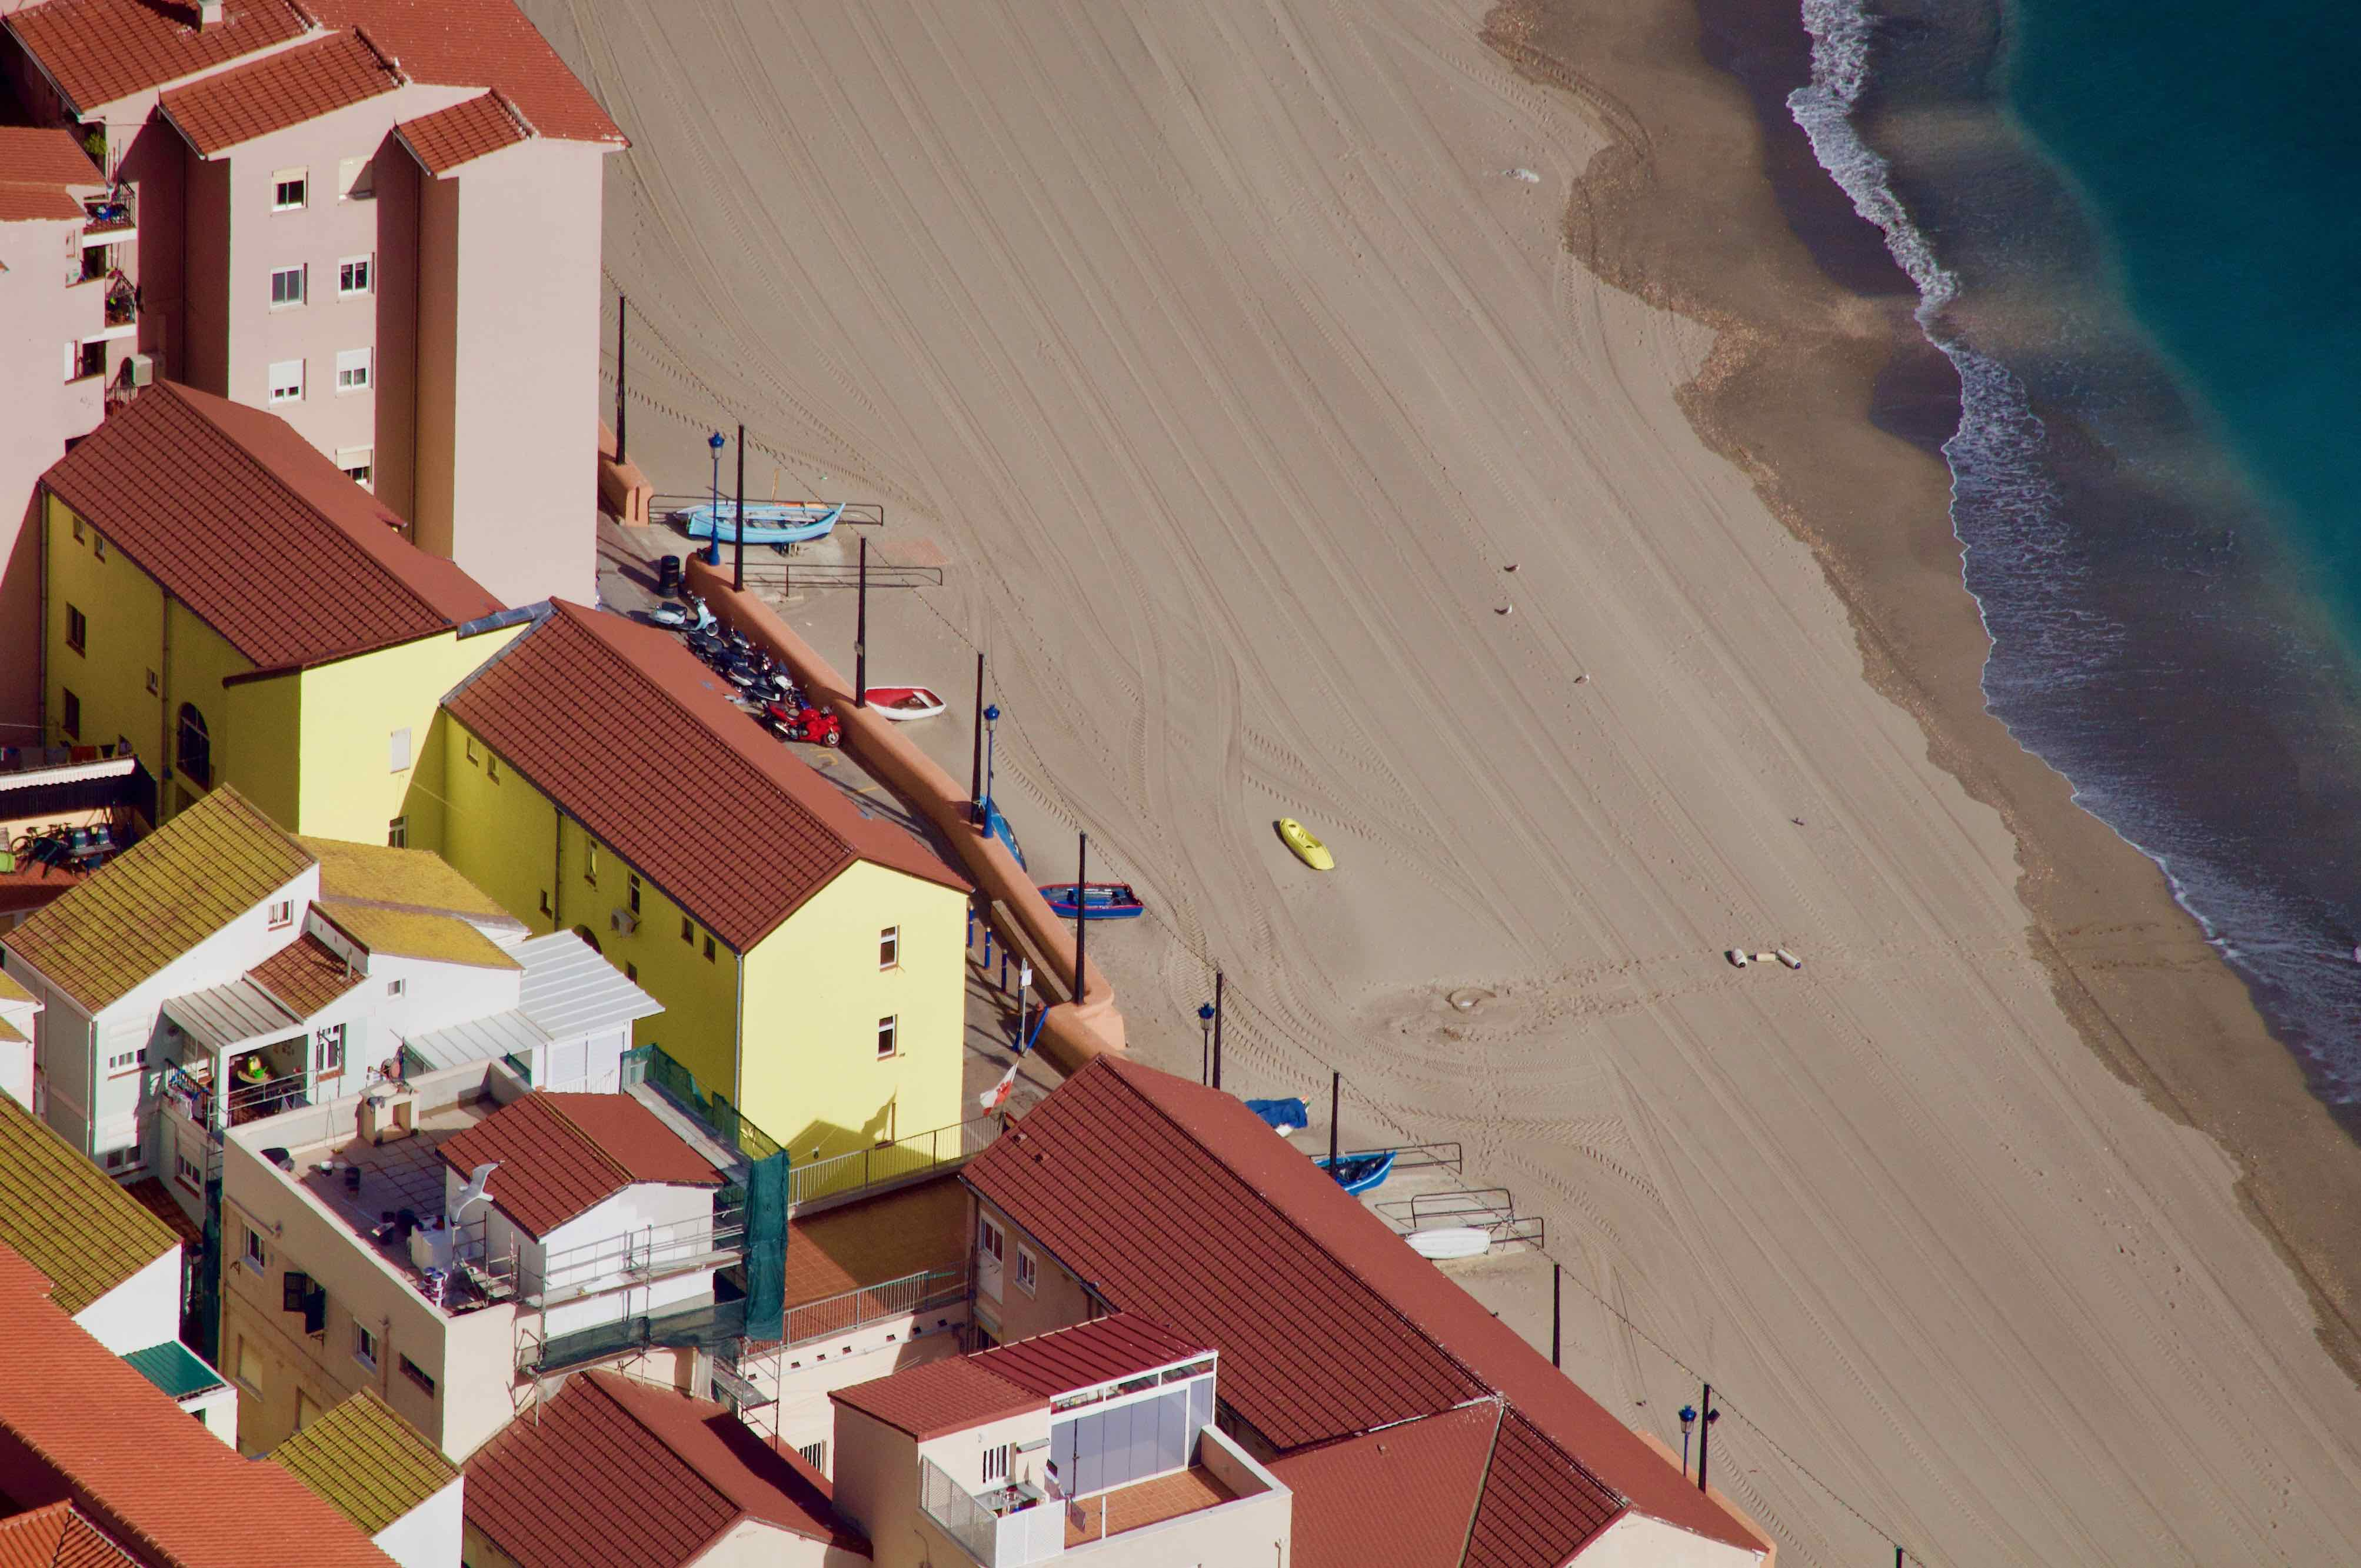 Gibraltar, bird perspective, colorful photo, from above, beach